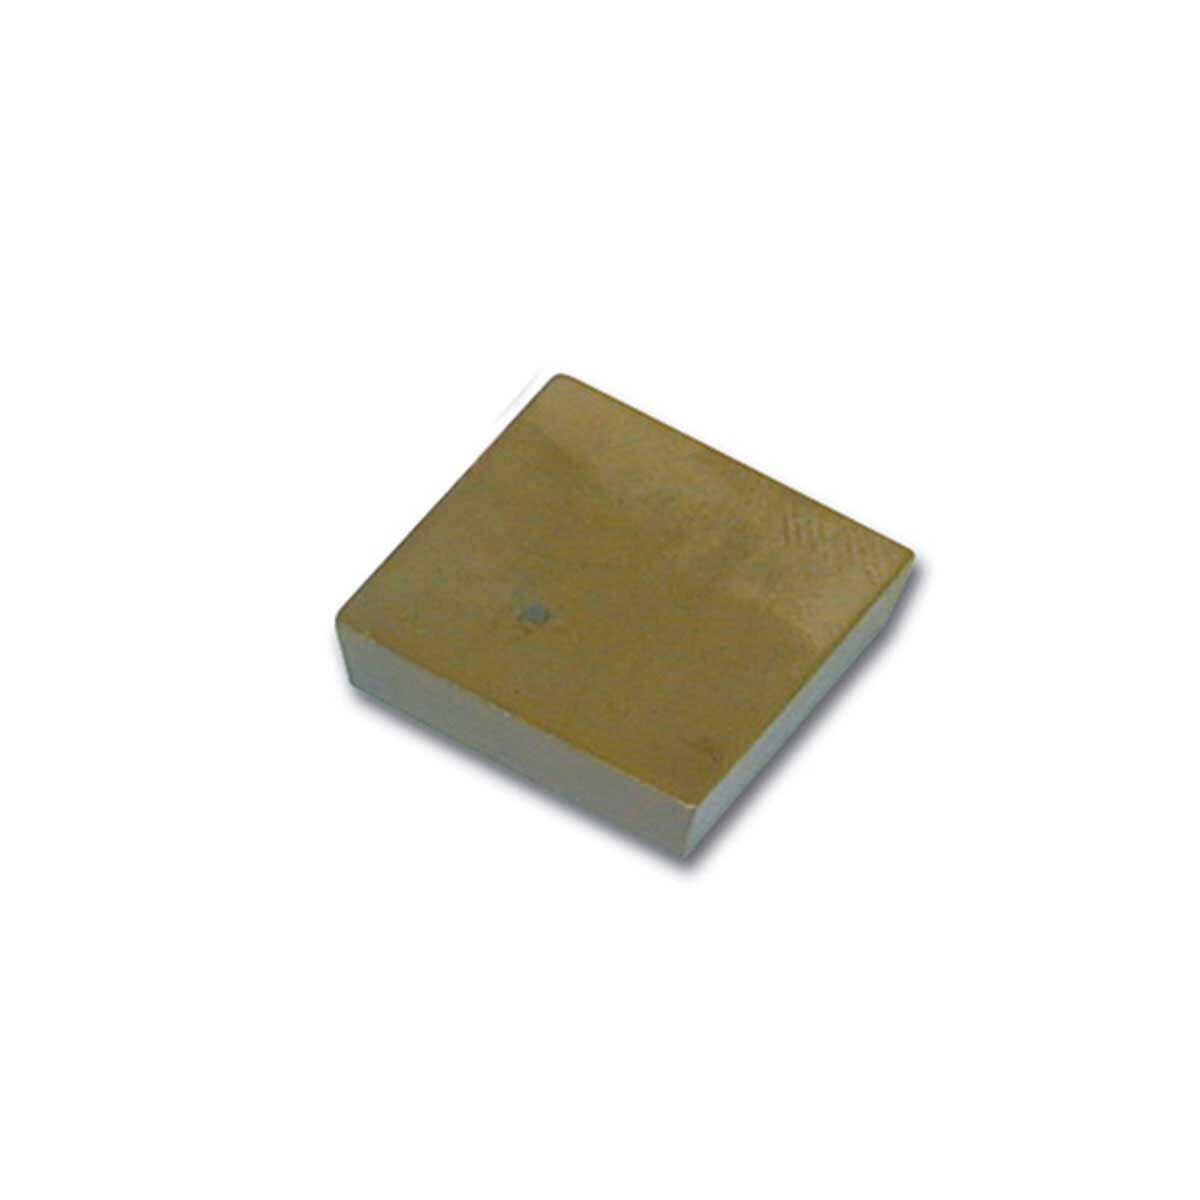 Pearl Abrasive #1 Carbide Chip HEX1CHIP